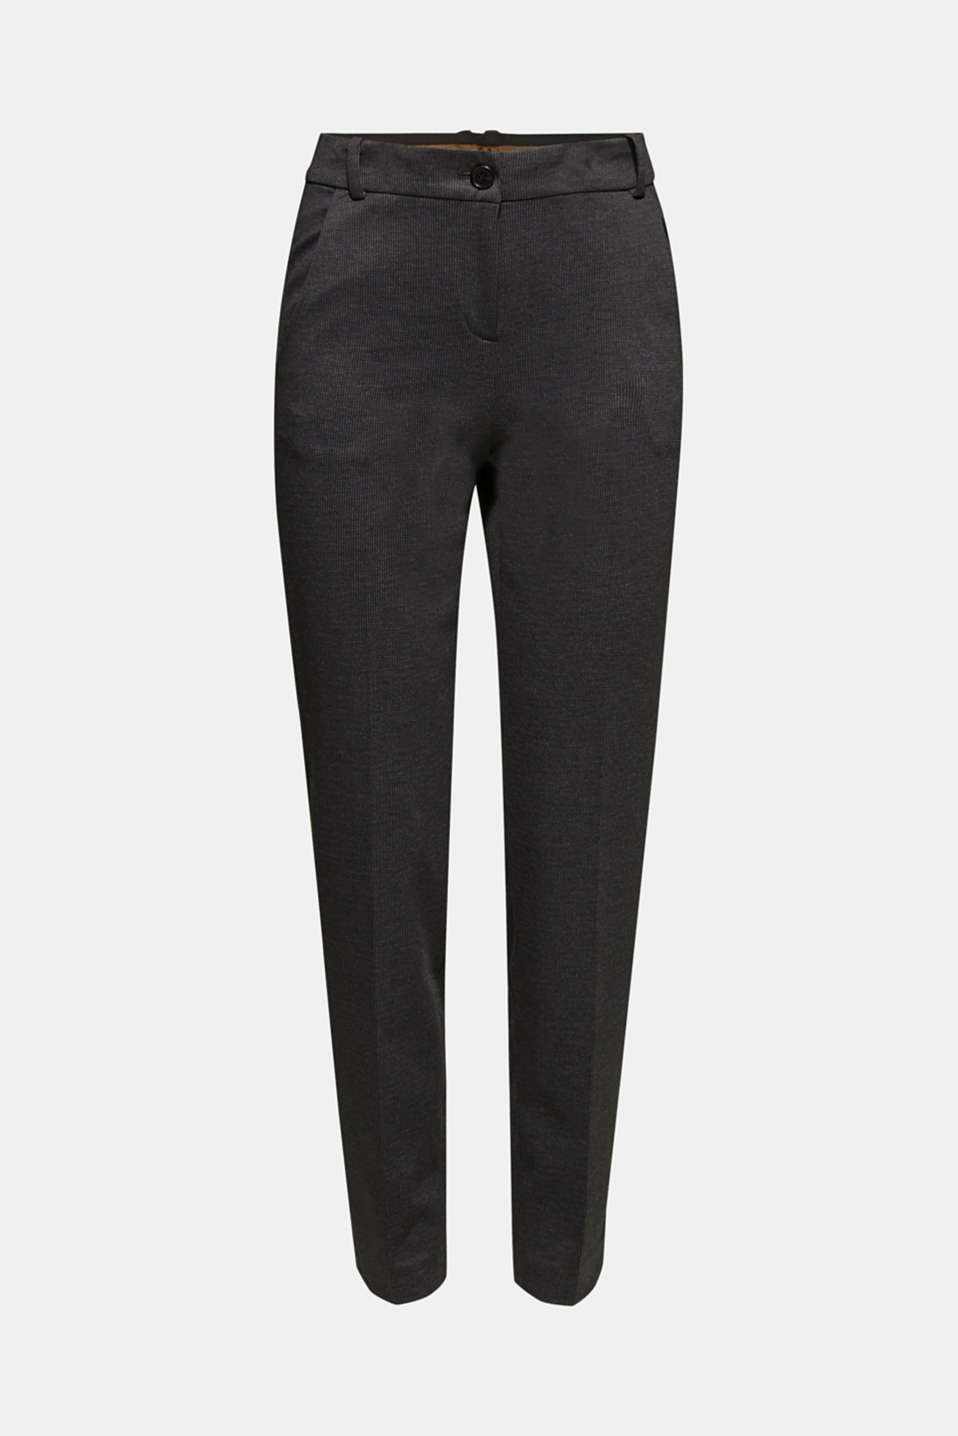 MINI CHECK Mix + Match stretch trousers, ANTHRACITE, detail image number 7